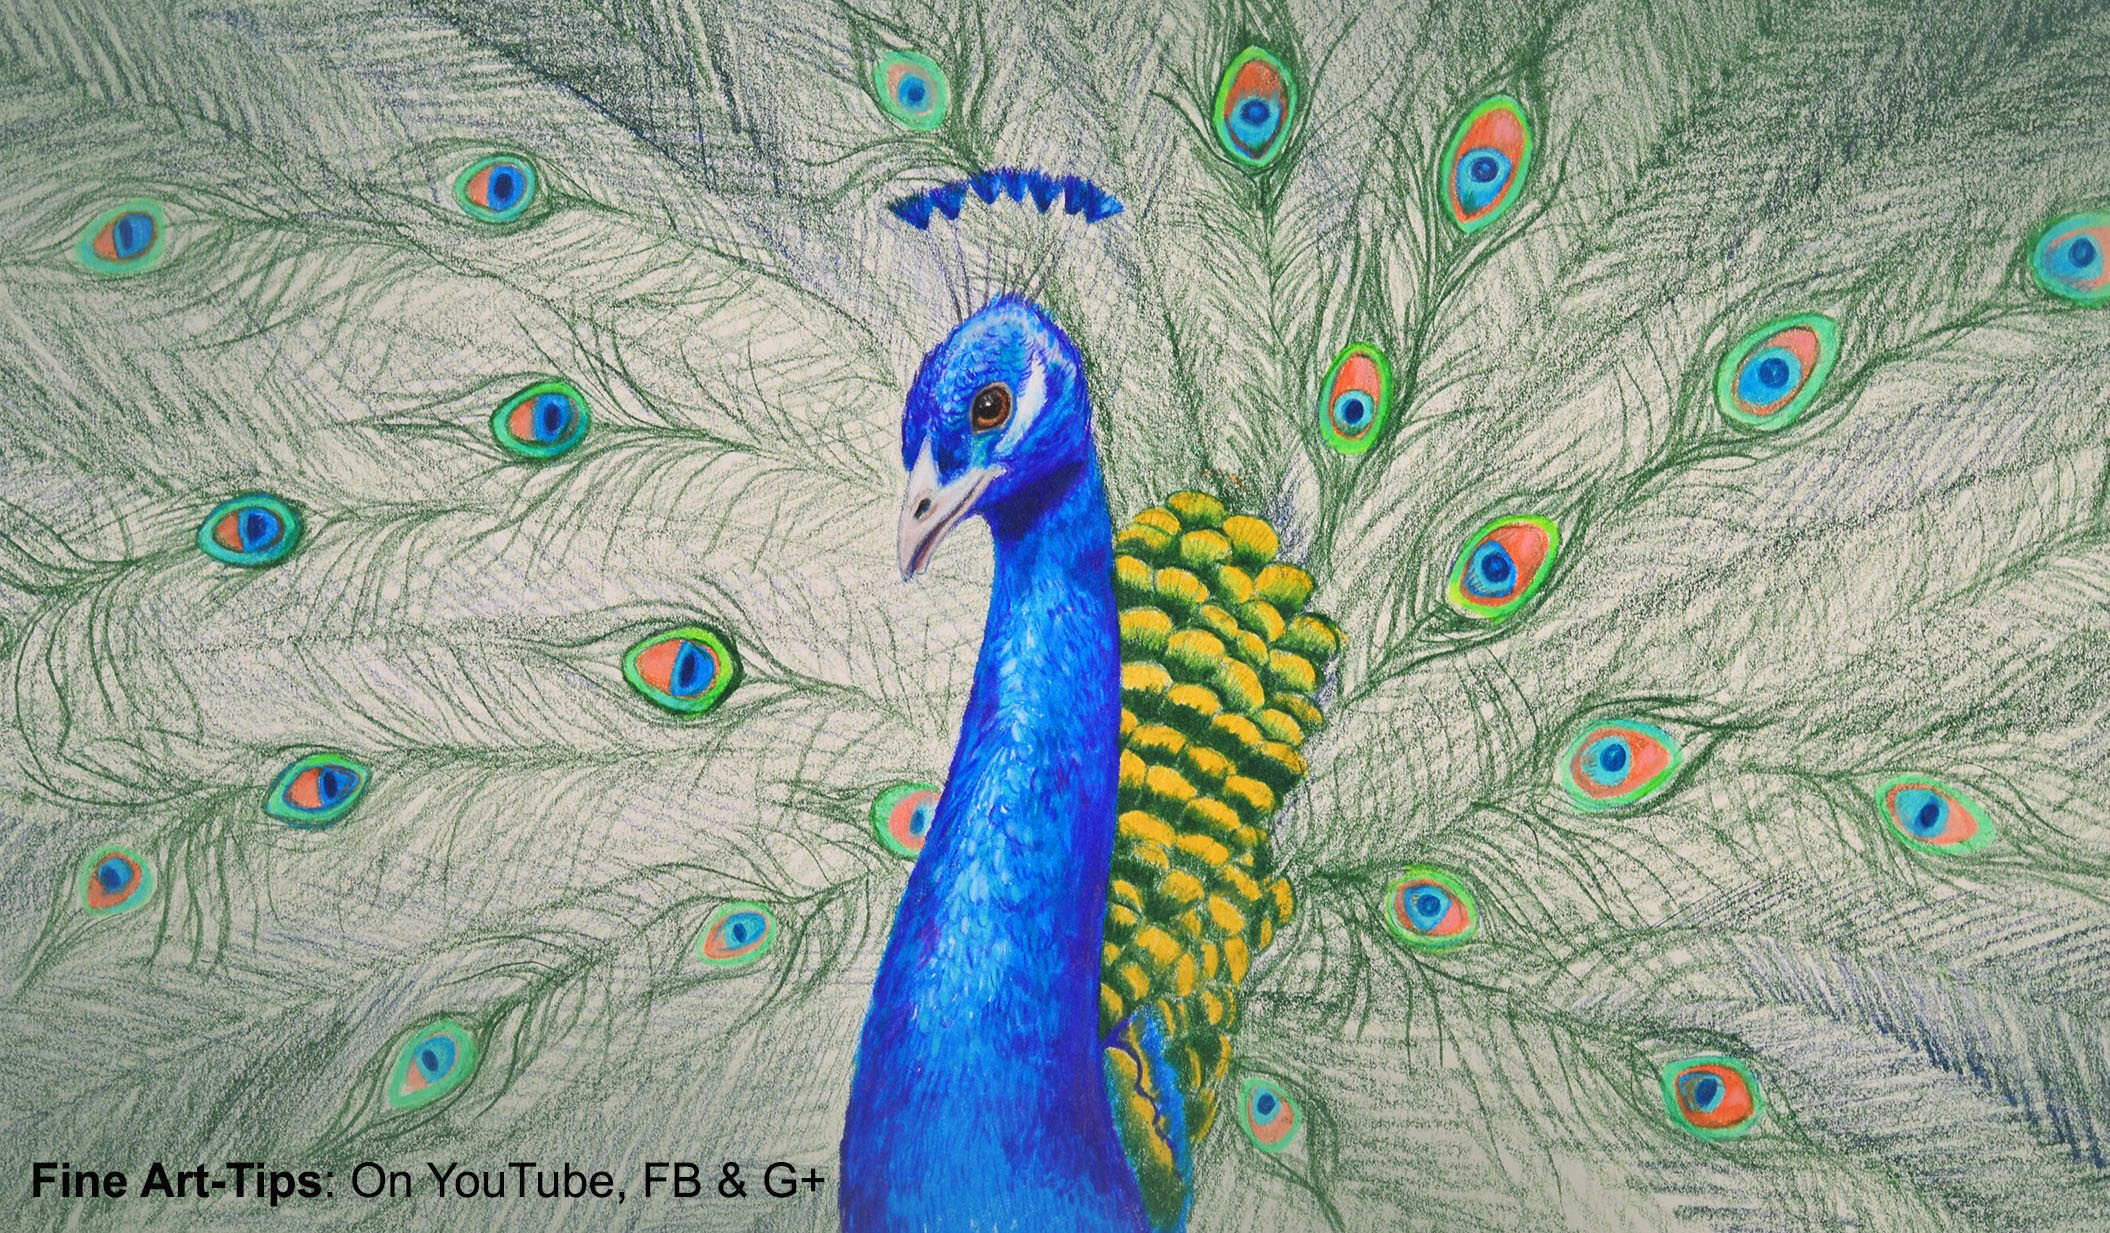 Drawn peacock With and Peacock Pencils to